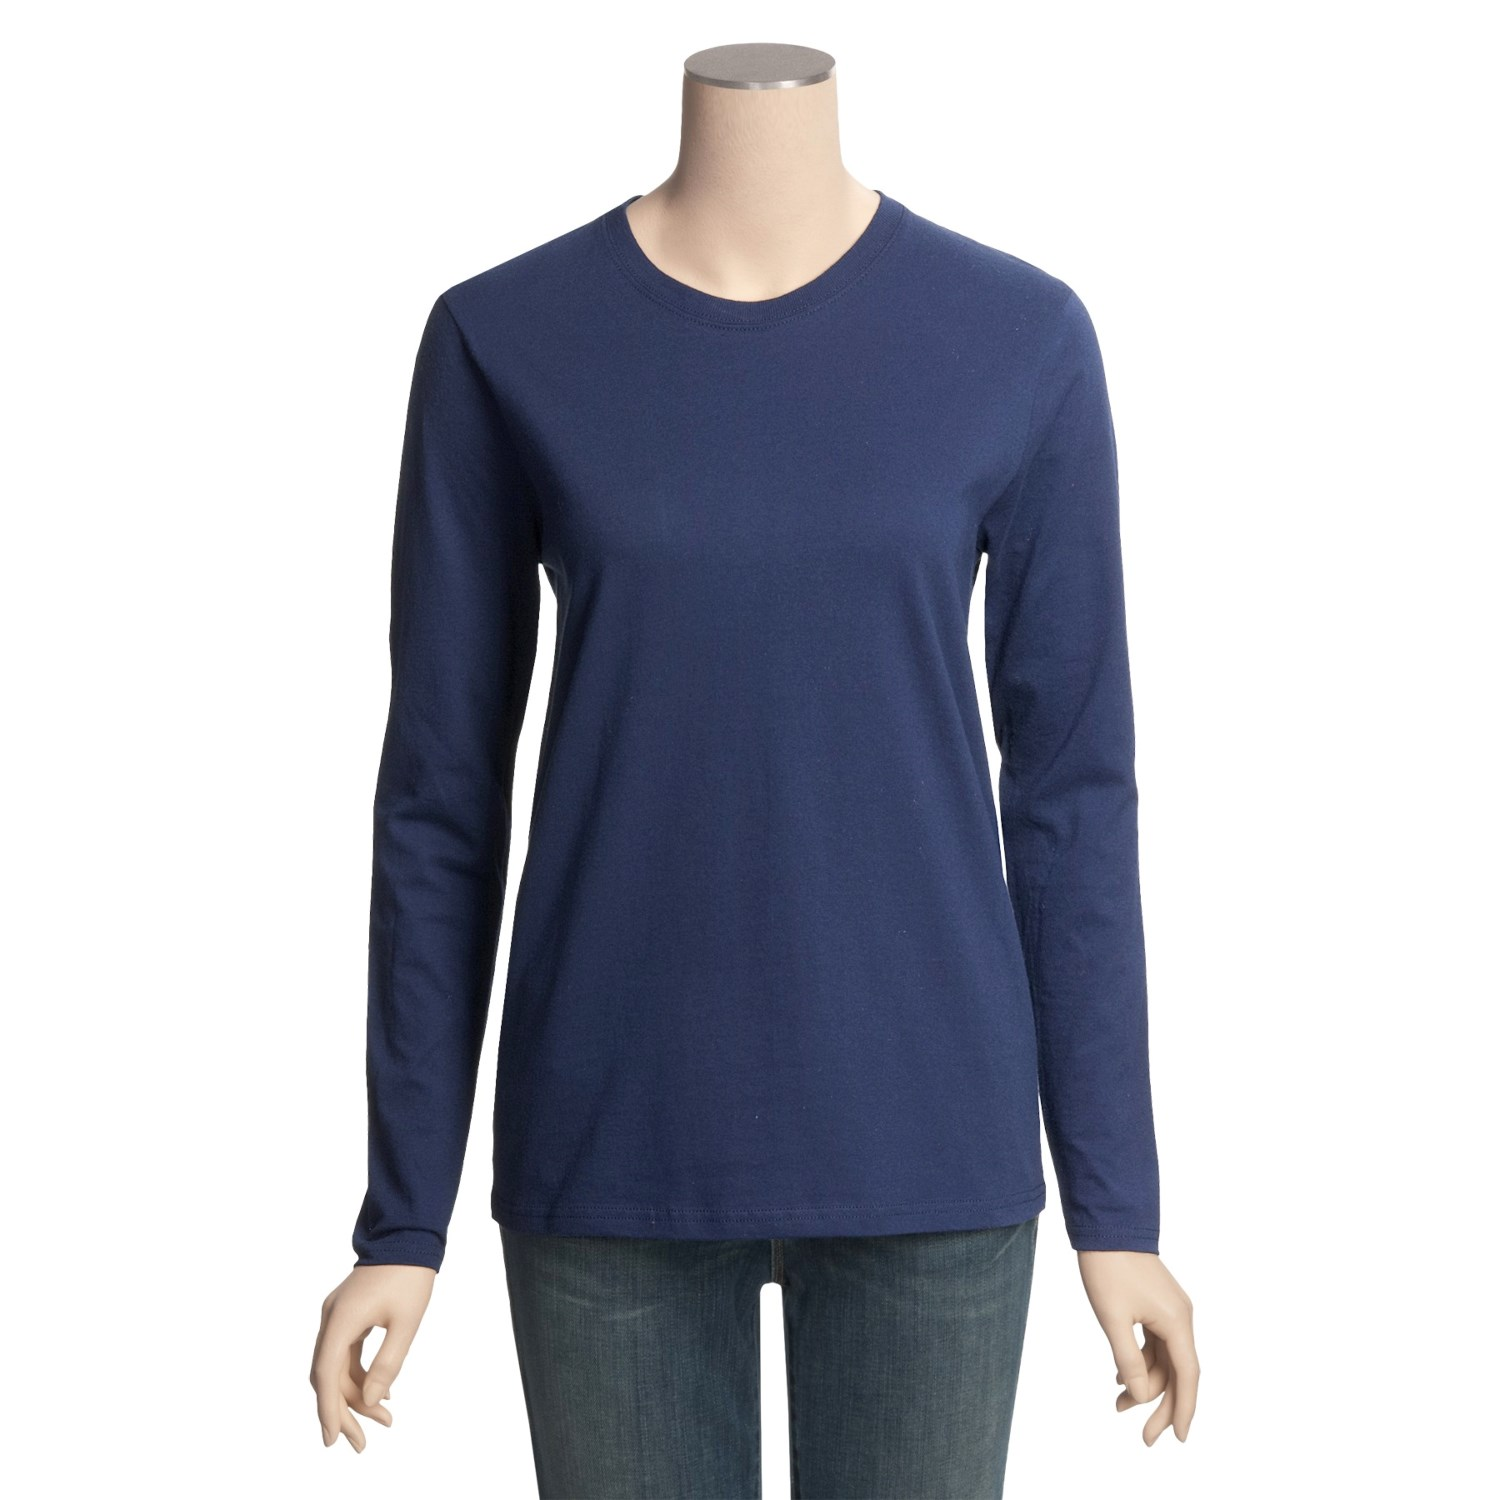 Hanes Shirt Hanes Relaxed Fit T-shirt